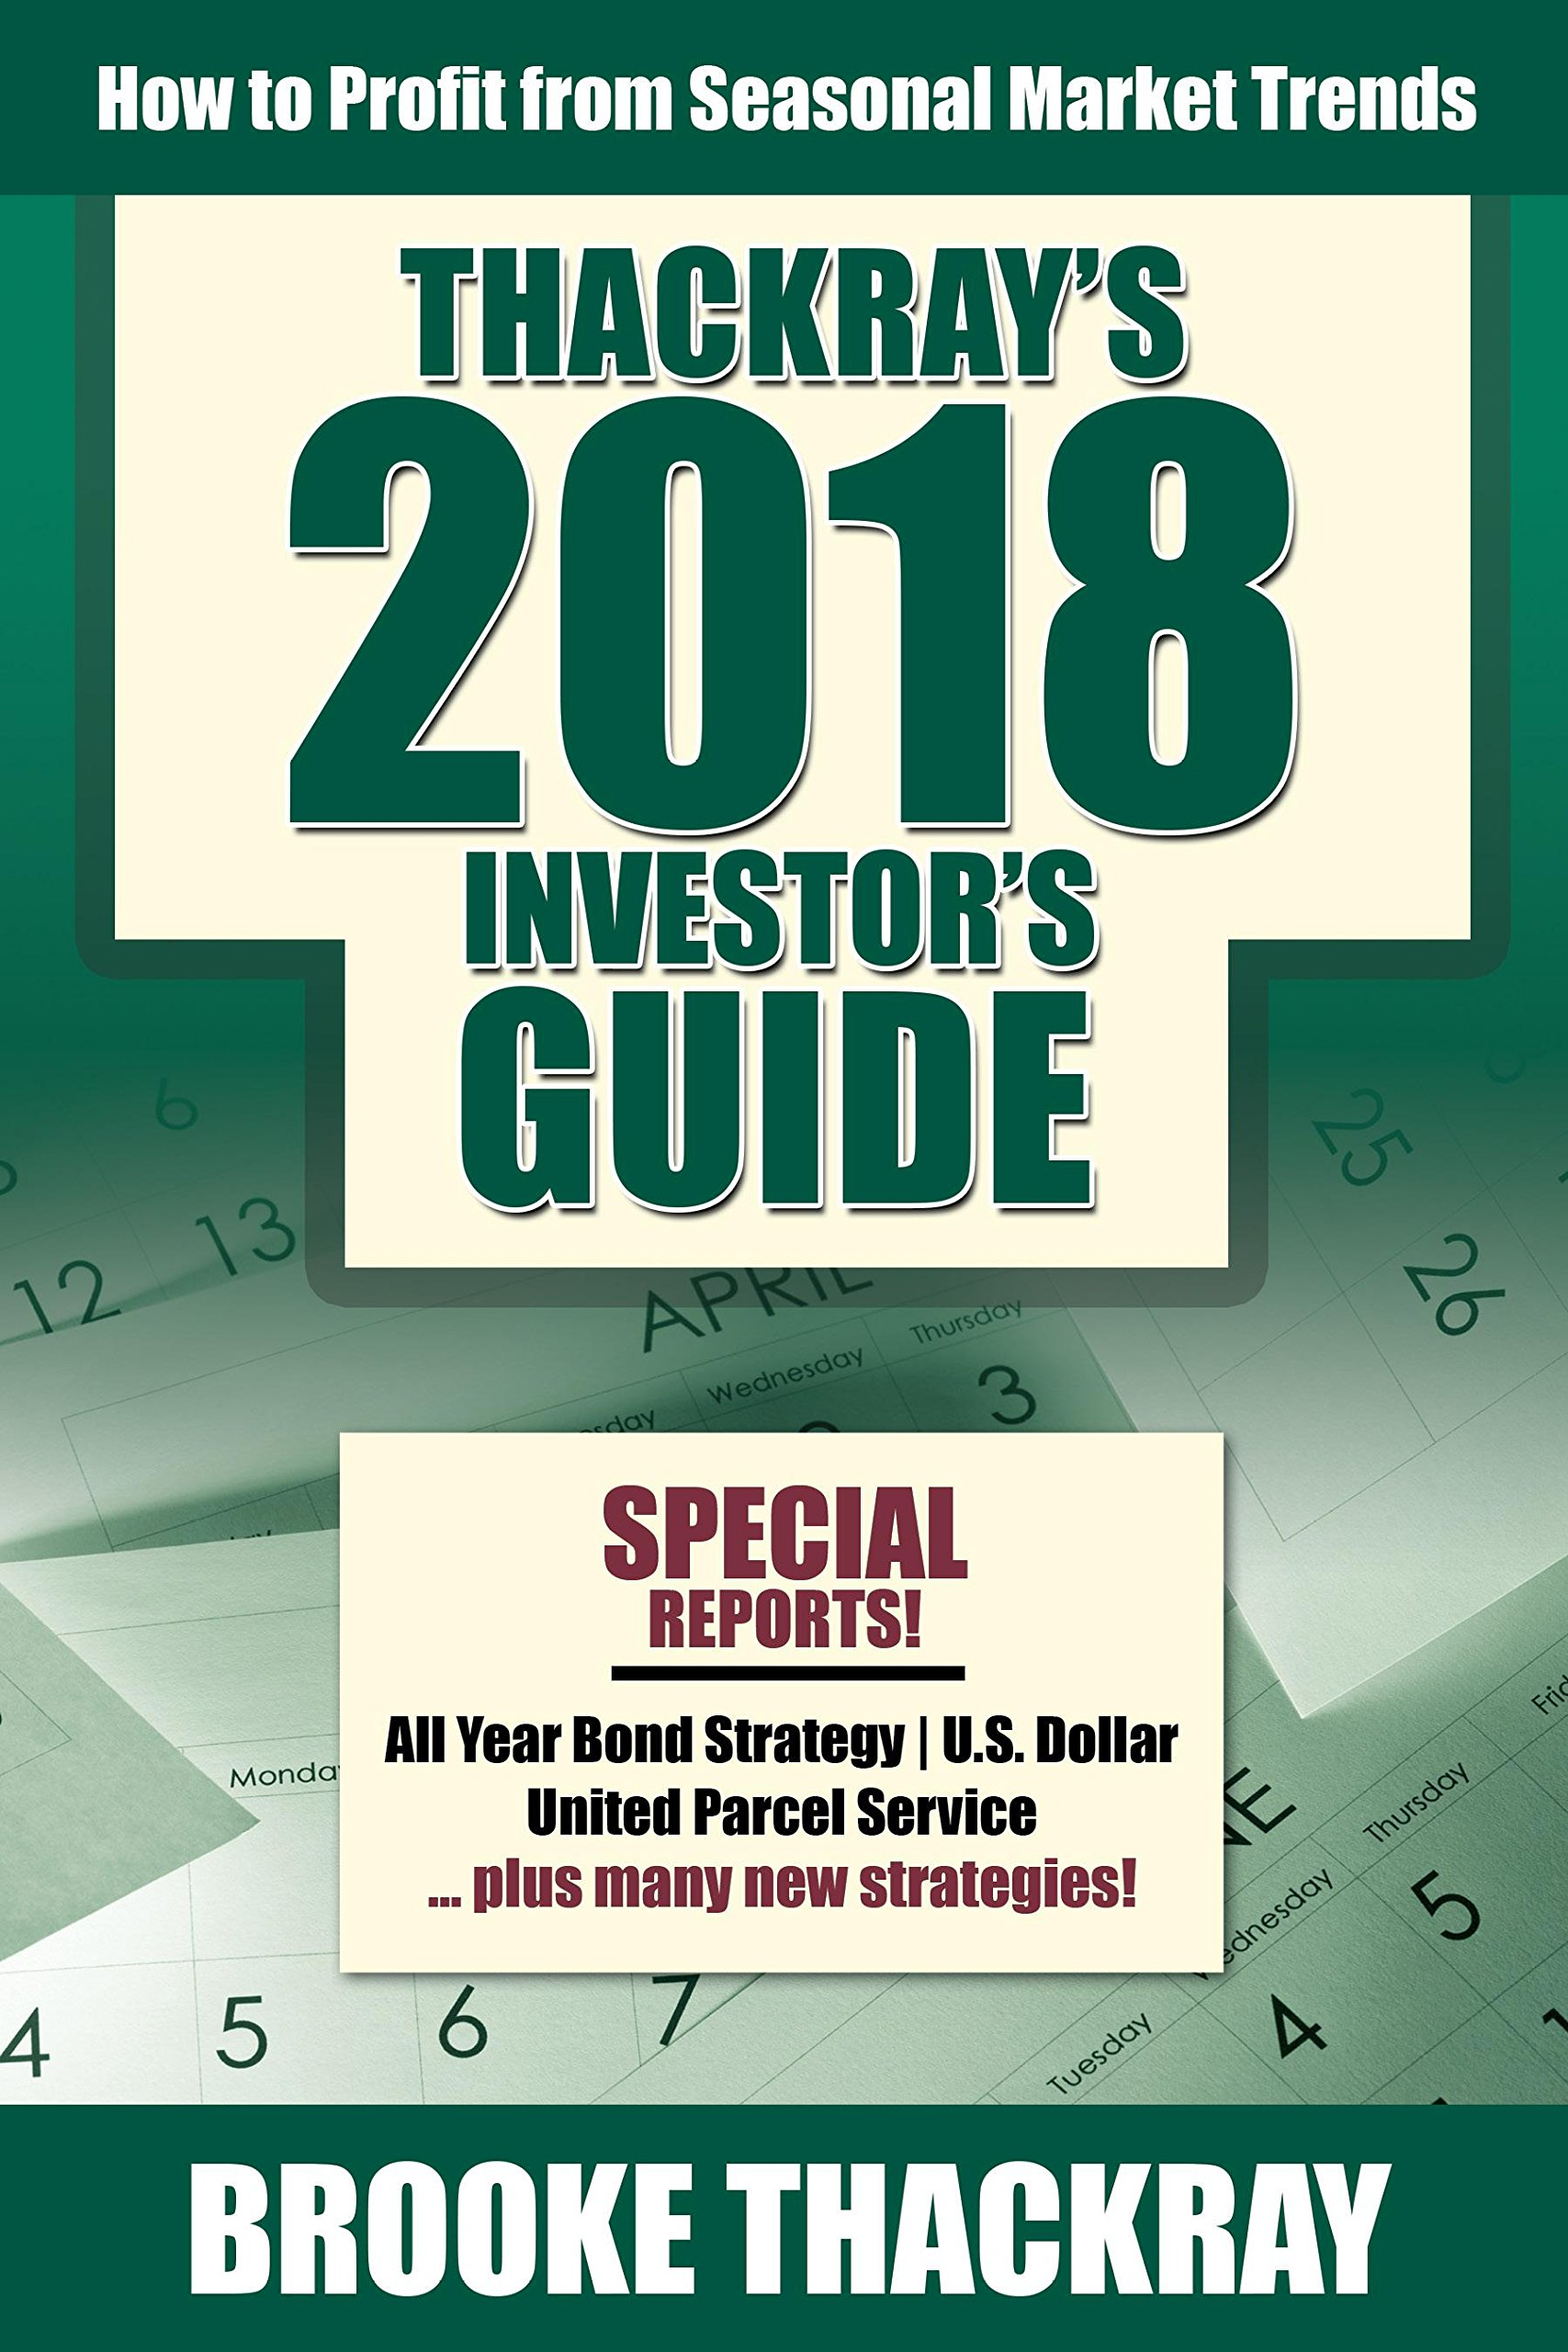 Thackray's 2018 Investor's Guide: How to Profit from Seasonal Market Trends (Thackray's Investor's Guide)